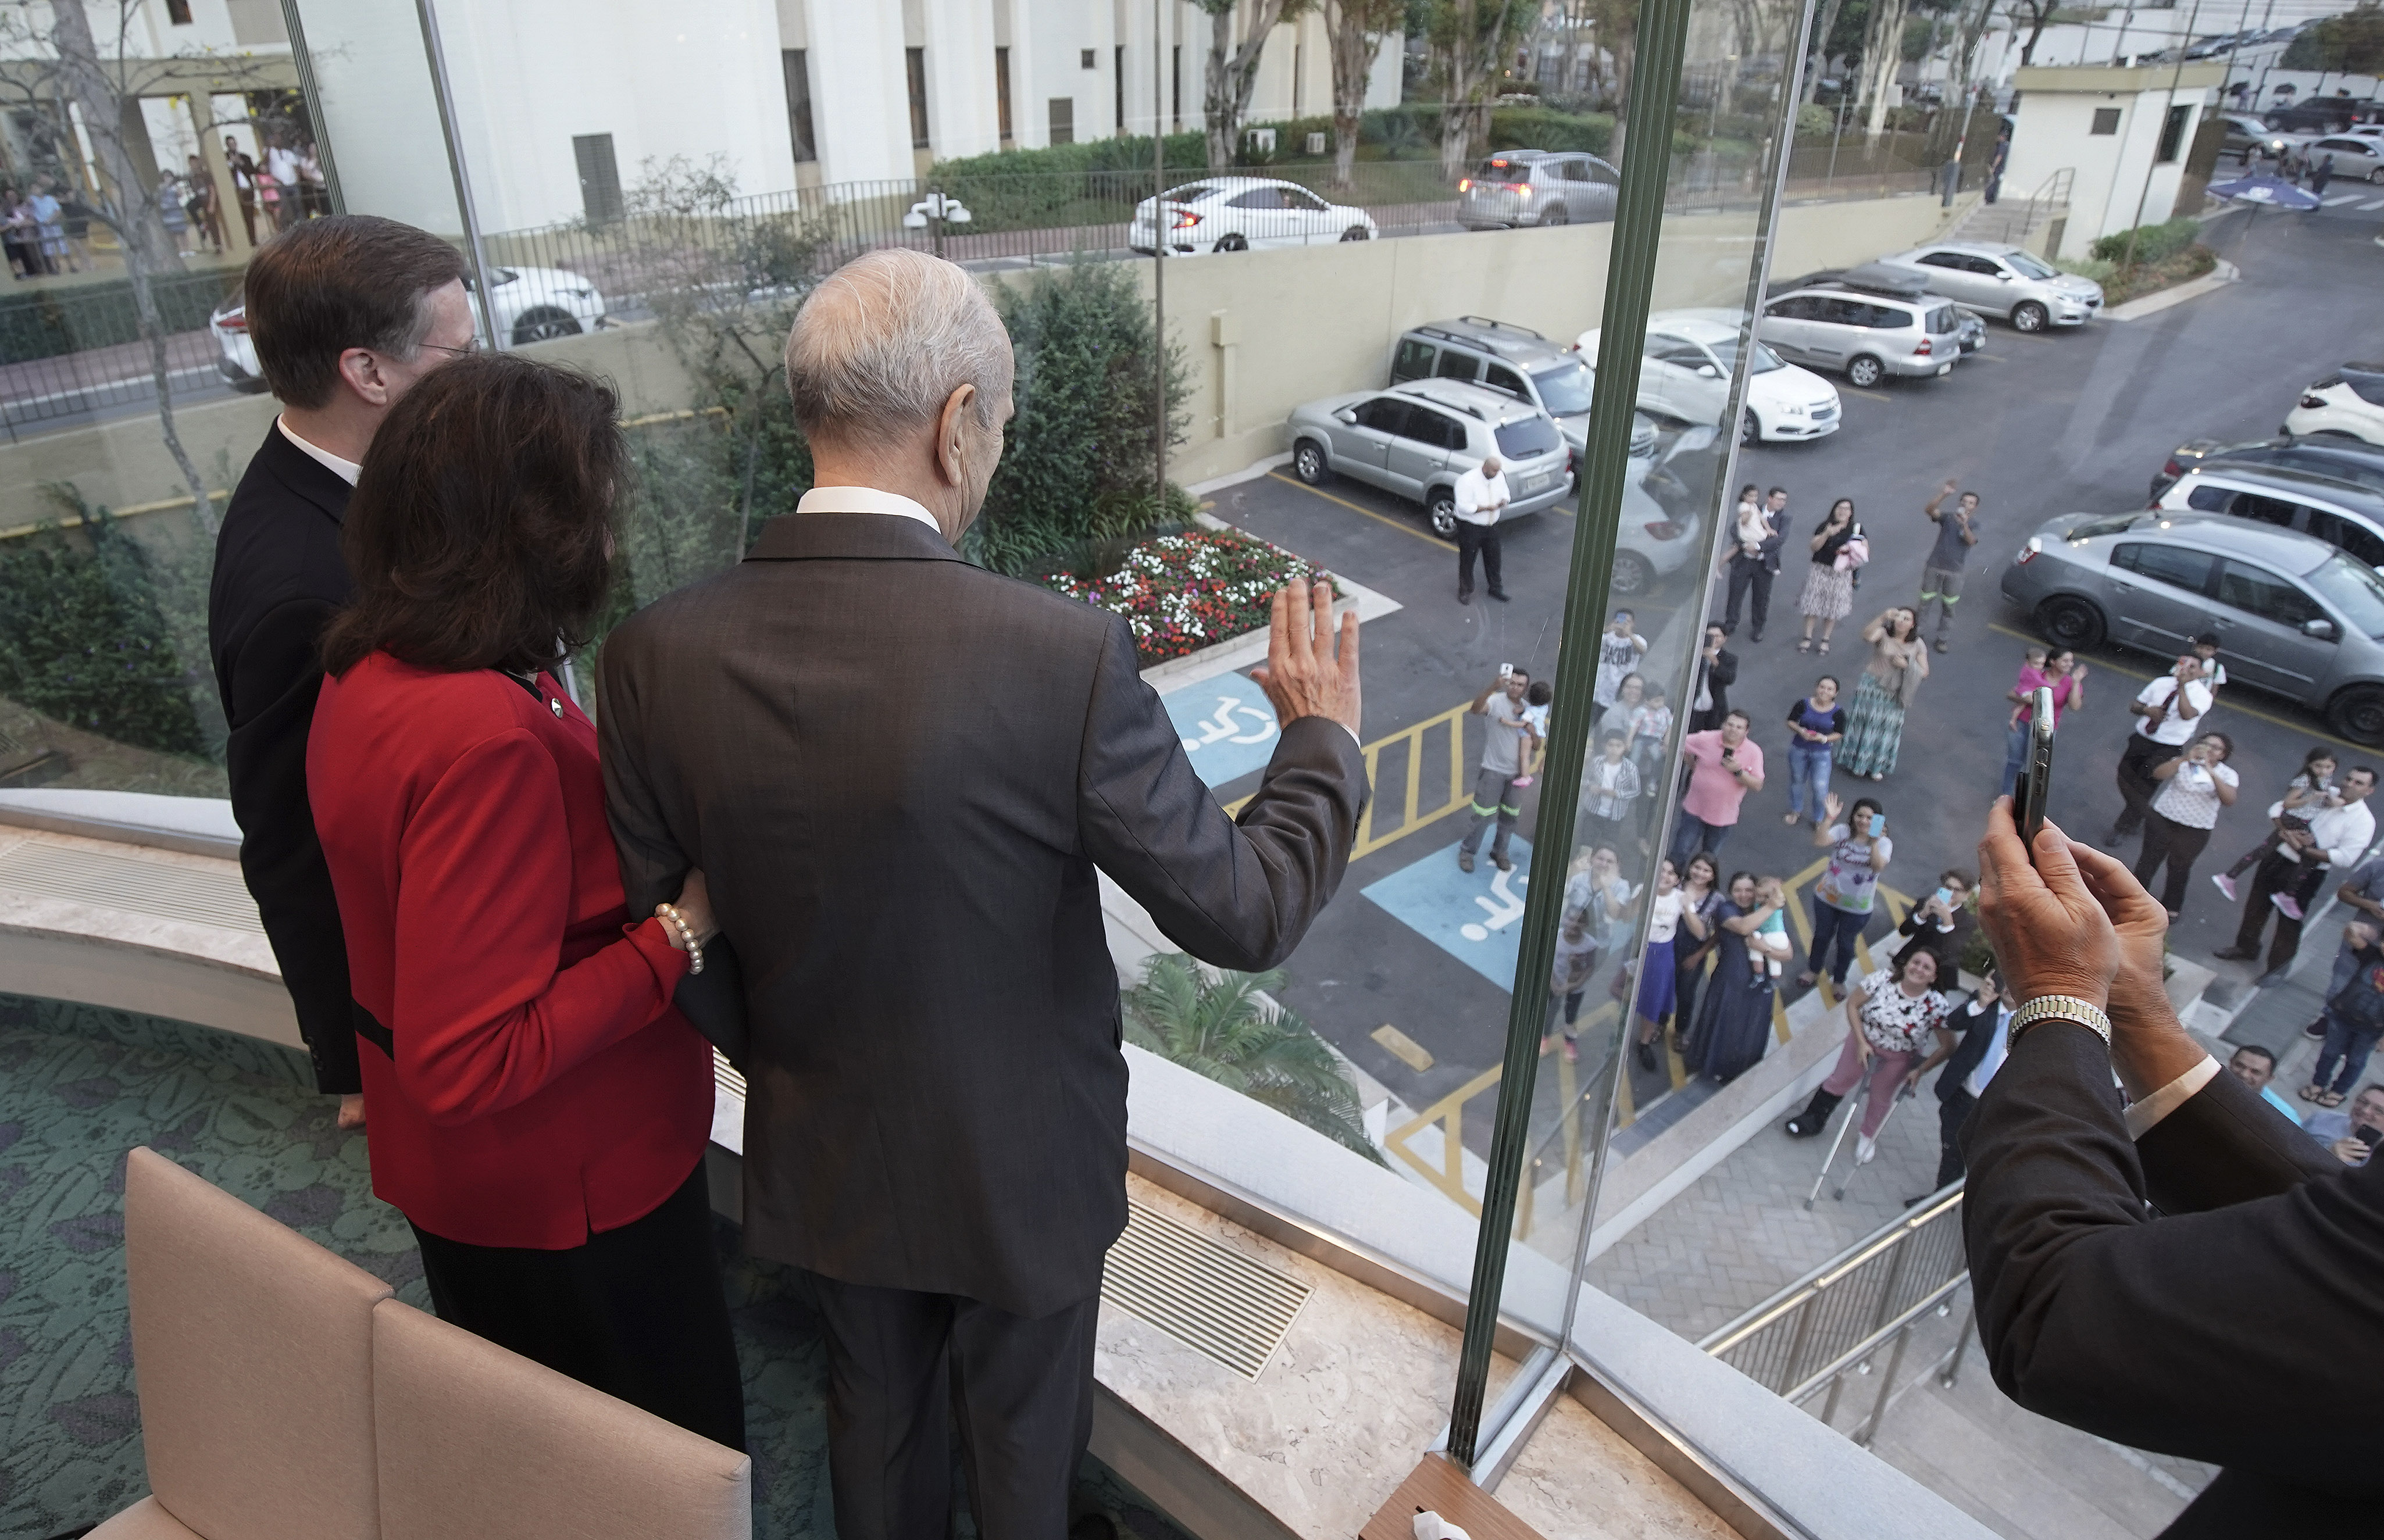 President Russell M. Nelson of The Church of Jesus Christ of Latter-day Saints and his wife, Sister Wendy Nelson, wave to individuals outside the Sao Paulo Temple Visitors' Center in Sao Paulo, Brazil, on Aug. 31, 2019.